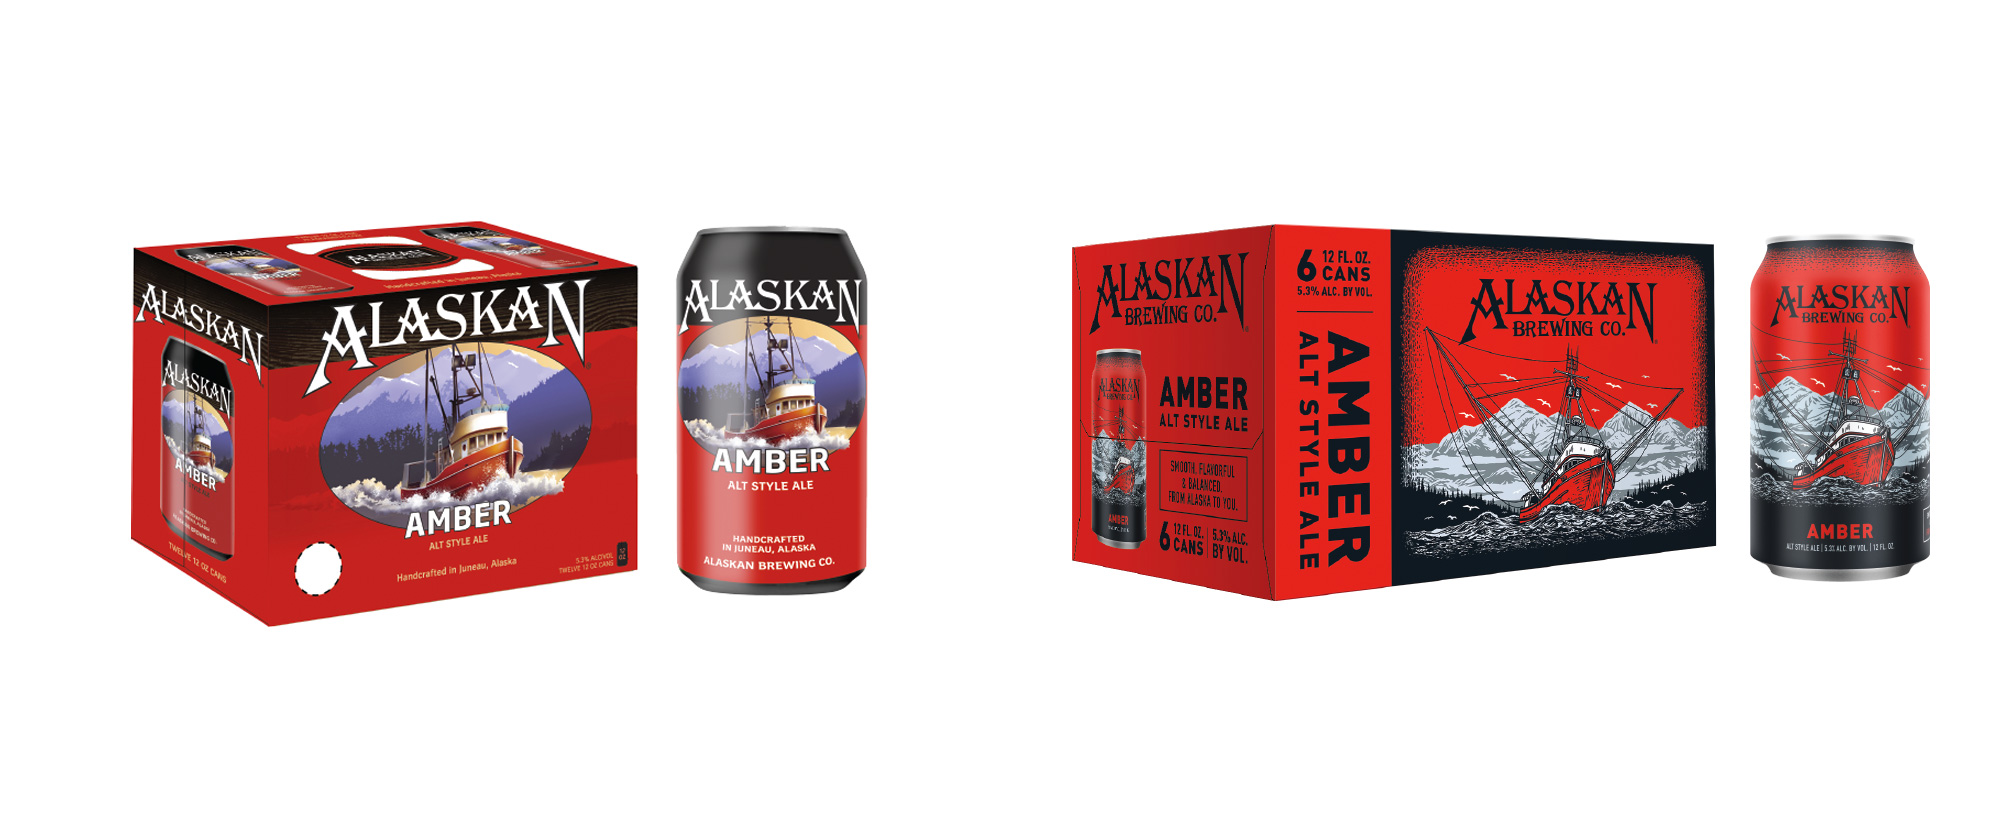 New Packaging for Alaskan Brewing Company by Blindtiger